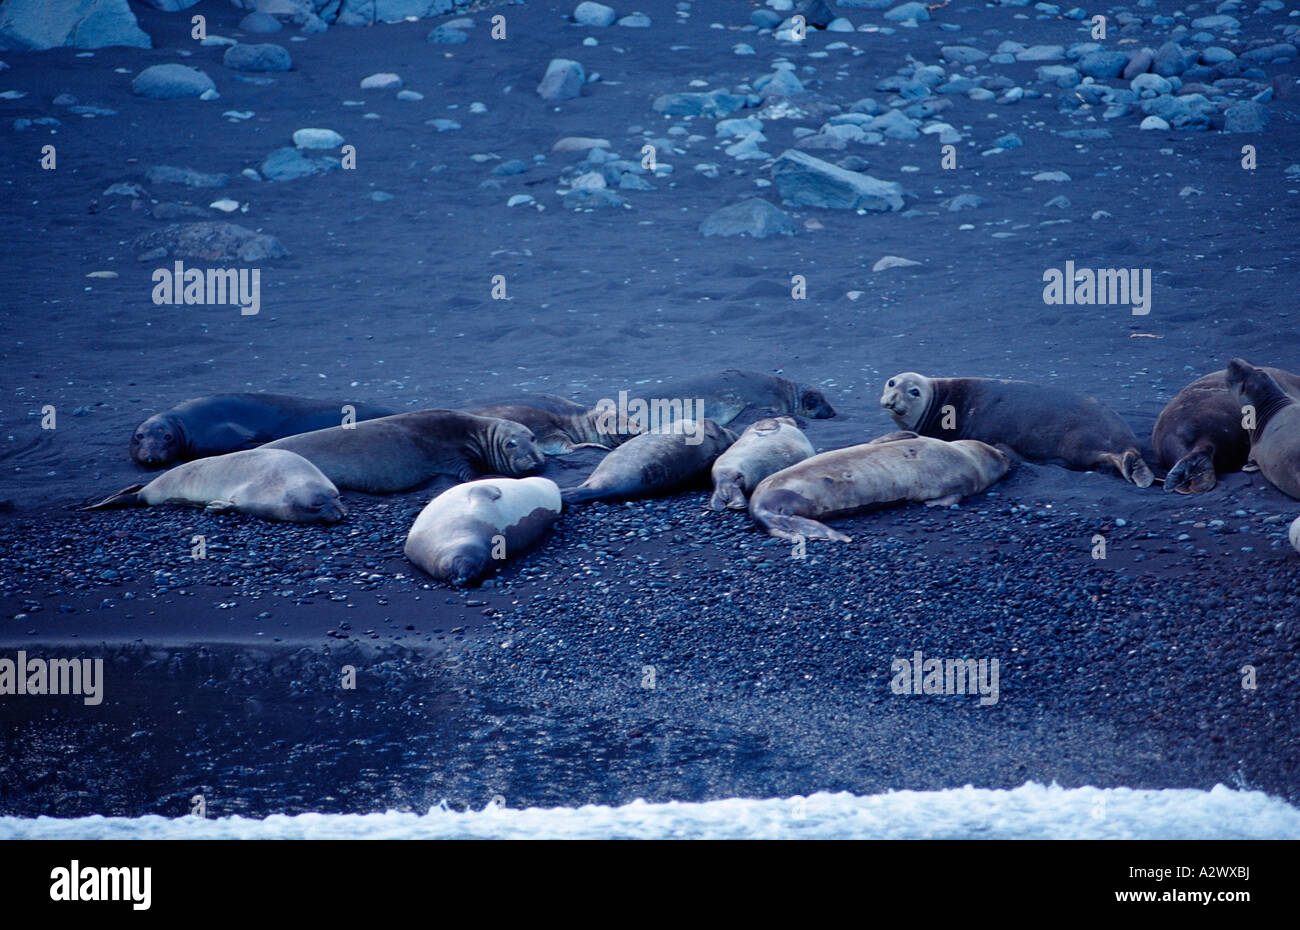 Northern elephant seal Mirounga angustirostris Mexico Pacific ocean Guadalupe - Stock Image